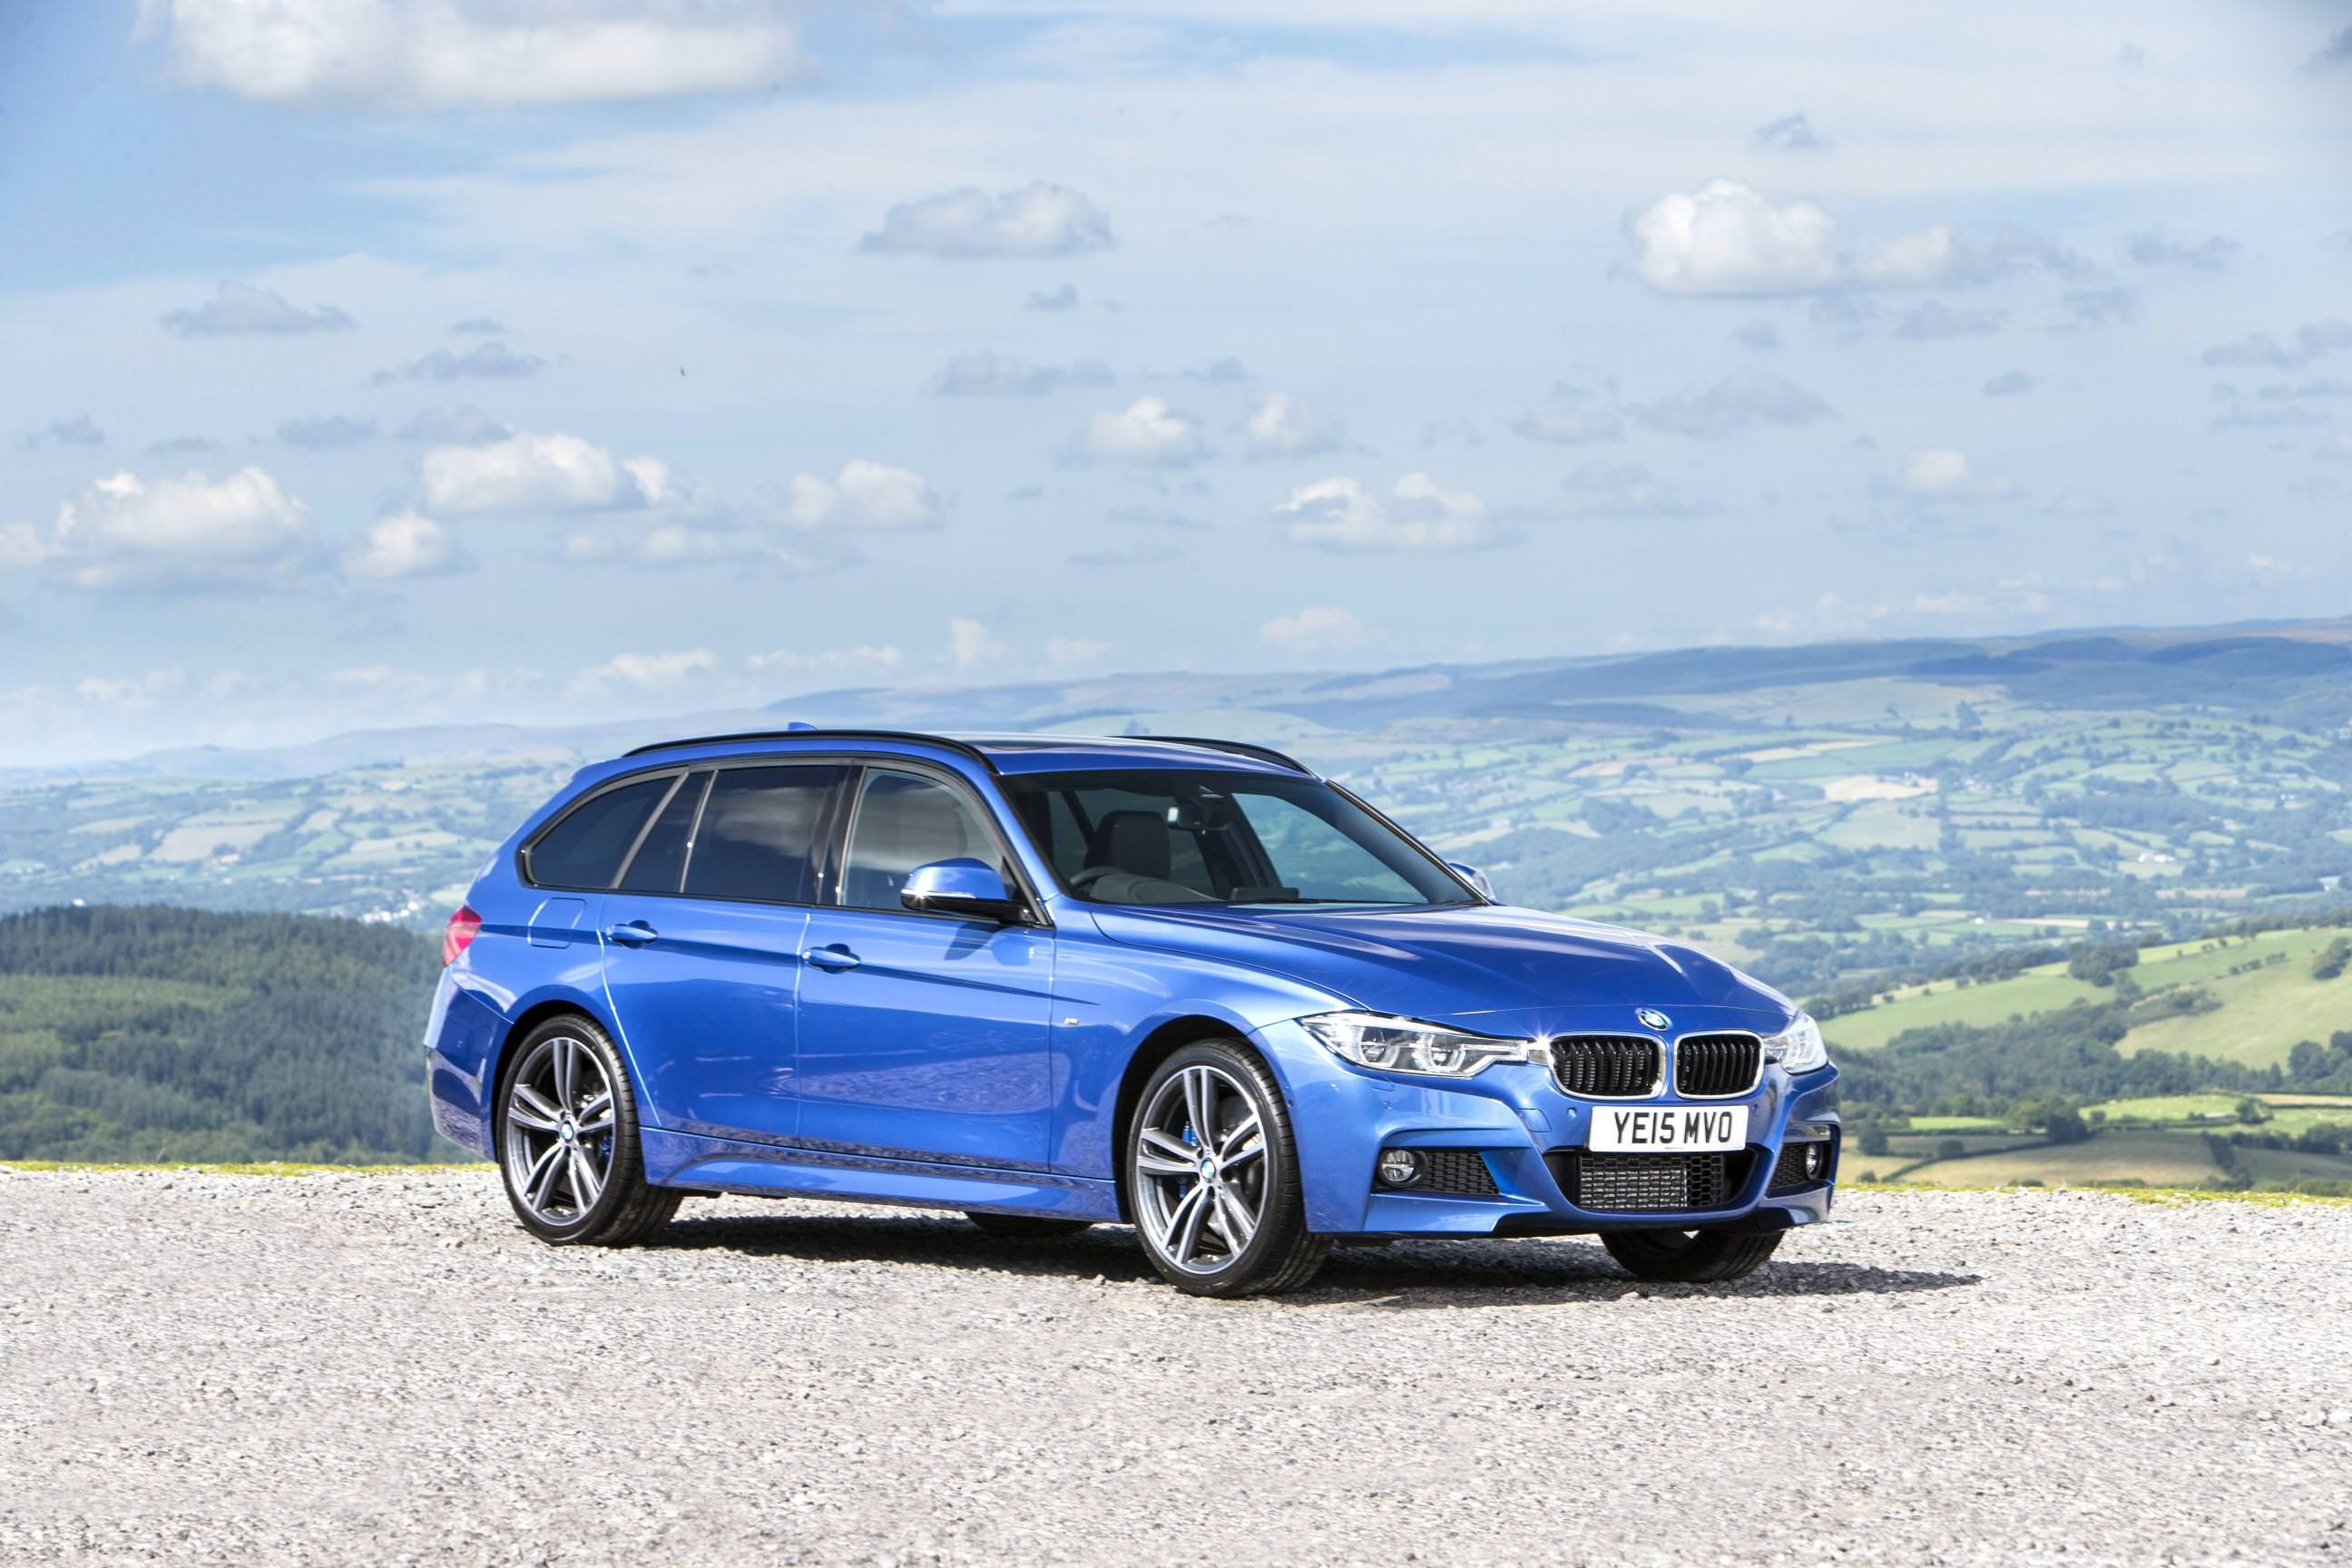 image of a blue bmw 3 series touring xdrive car exterior